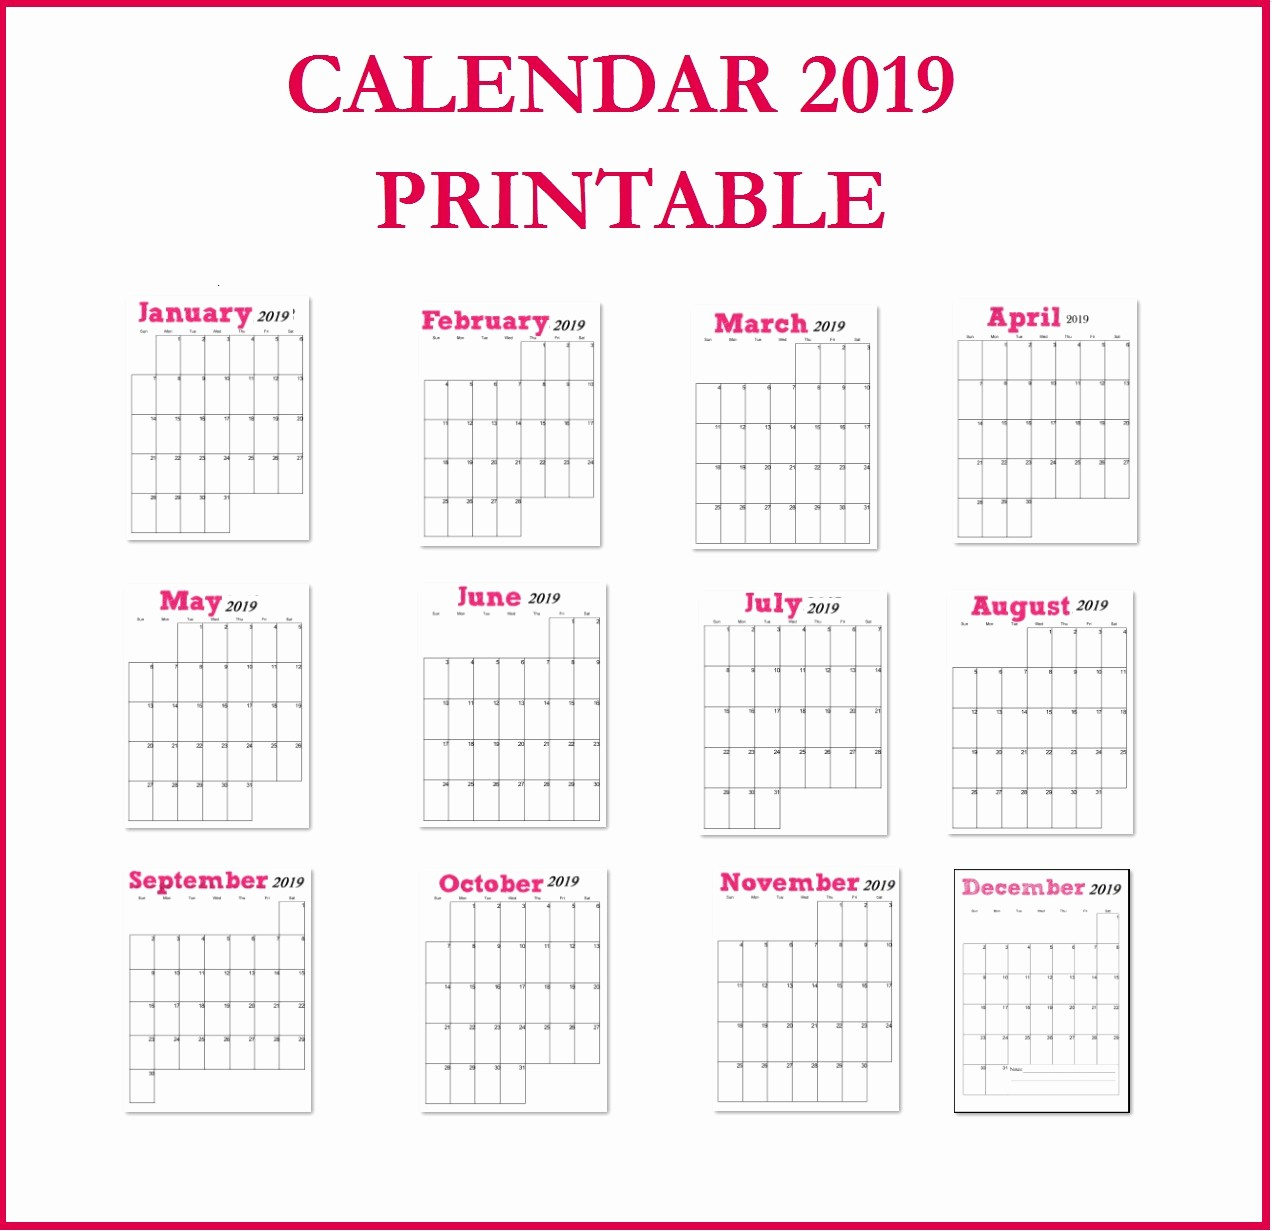 2019 Printable Calendar by Month Beautiful Printable 2019 Vertical Monthly Calendar